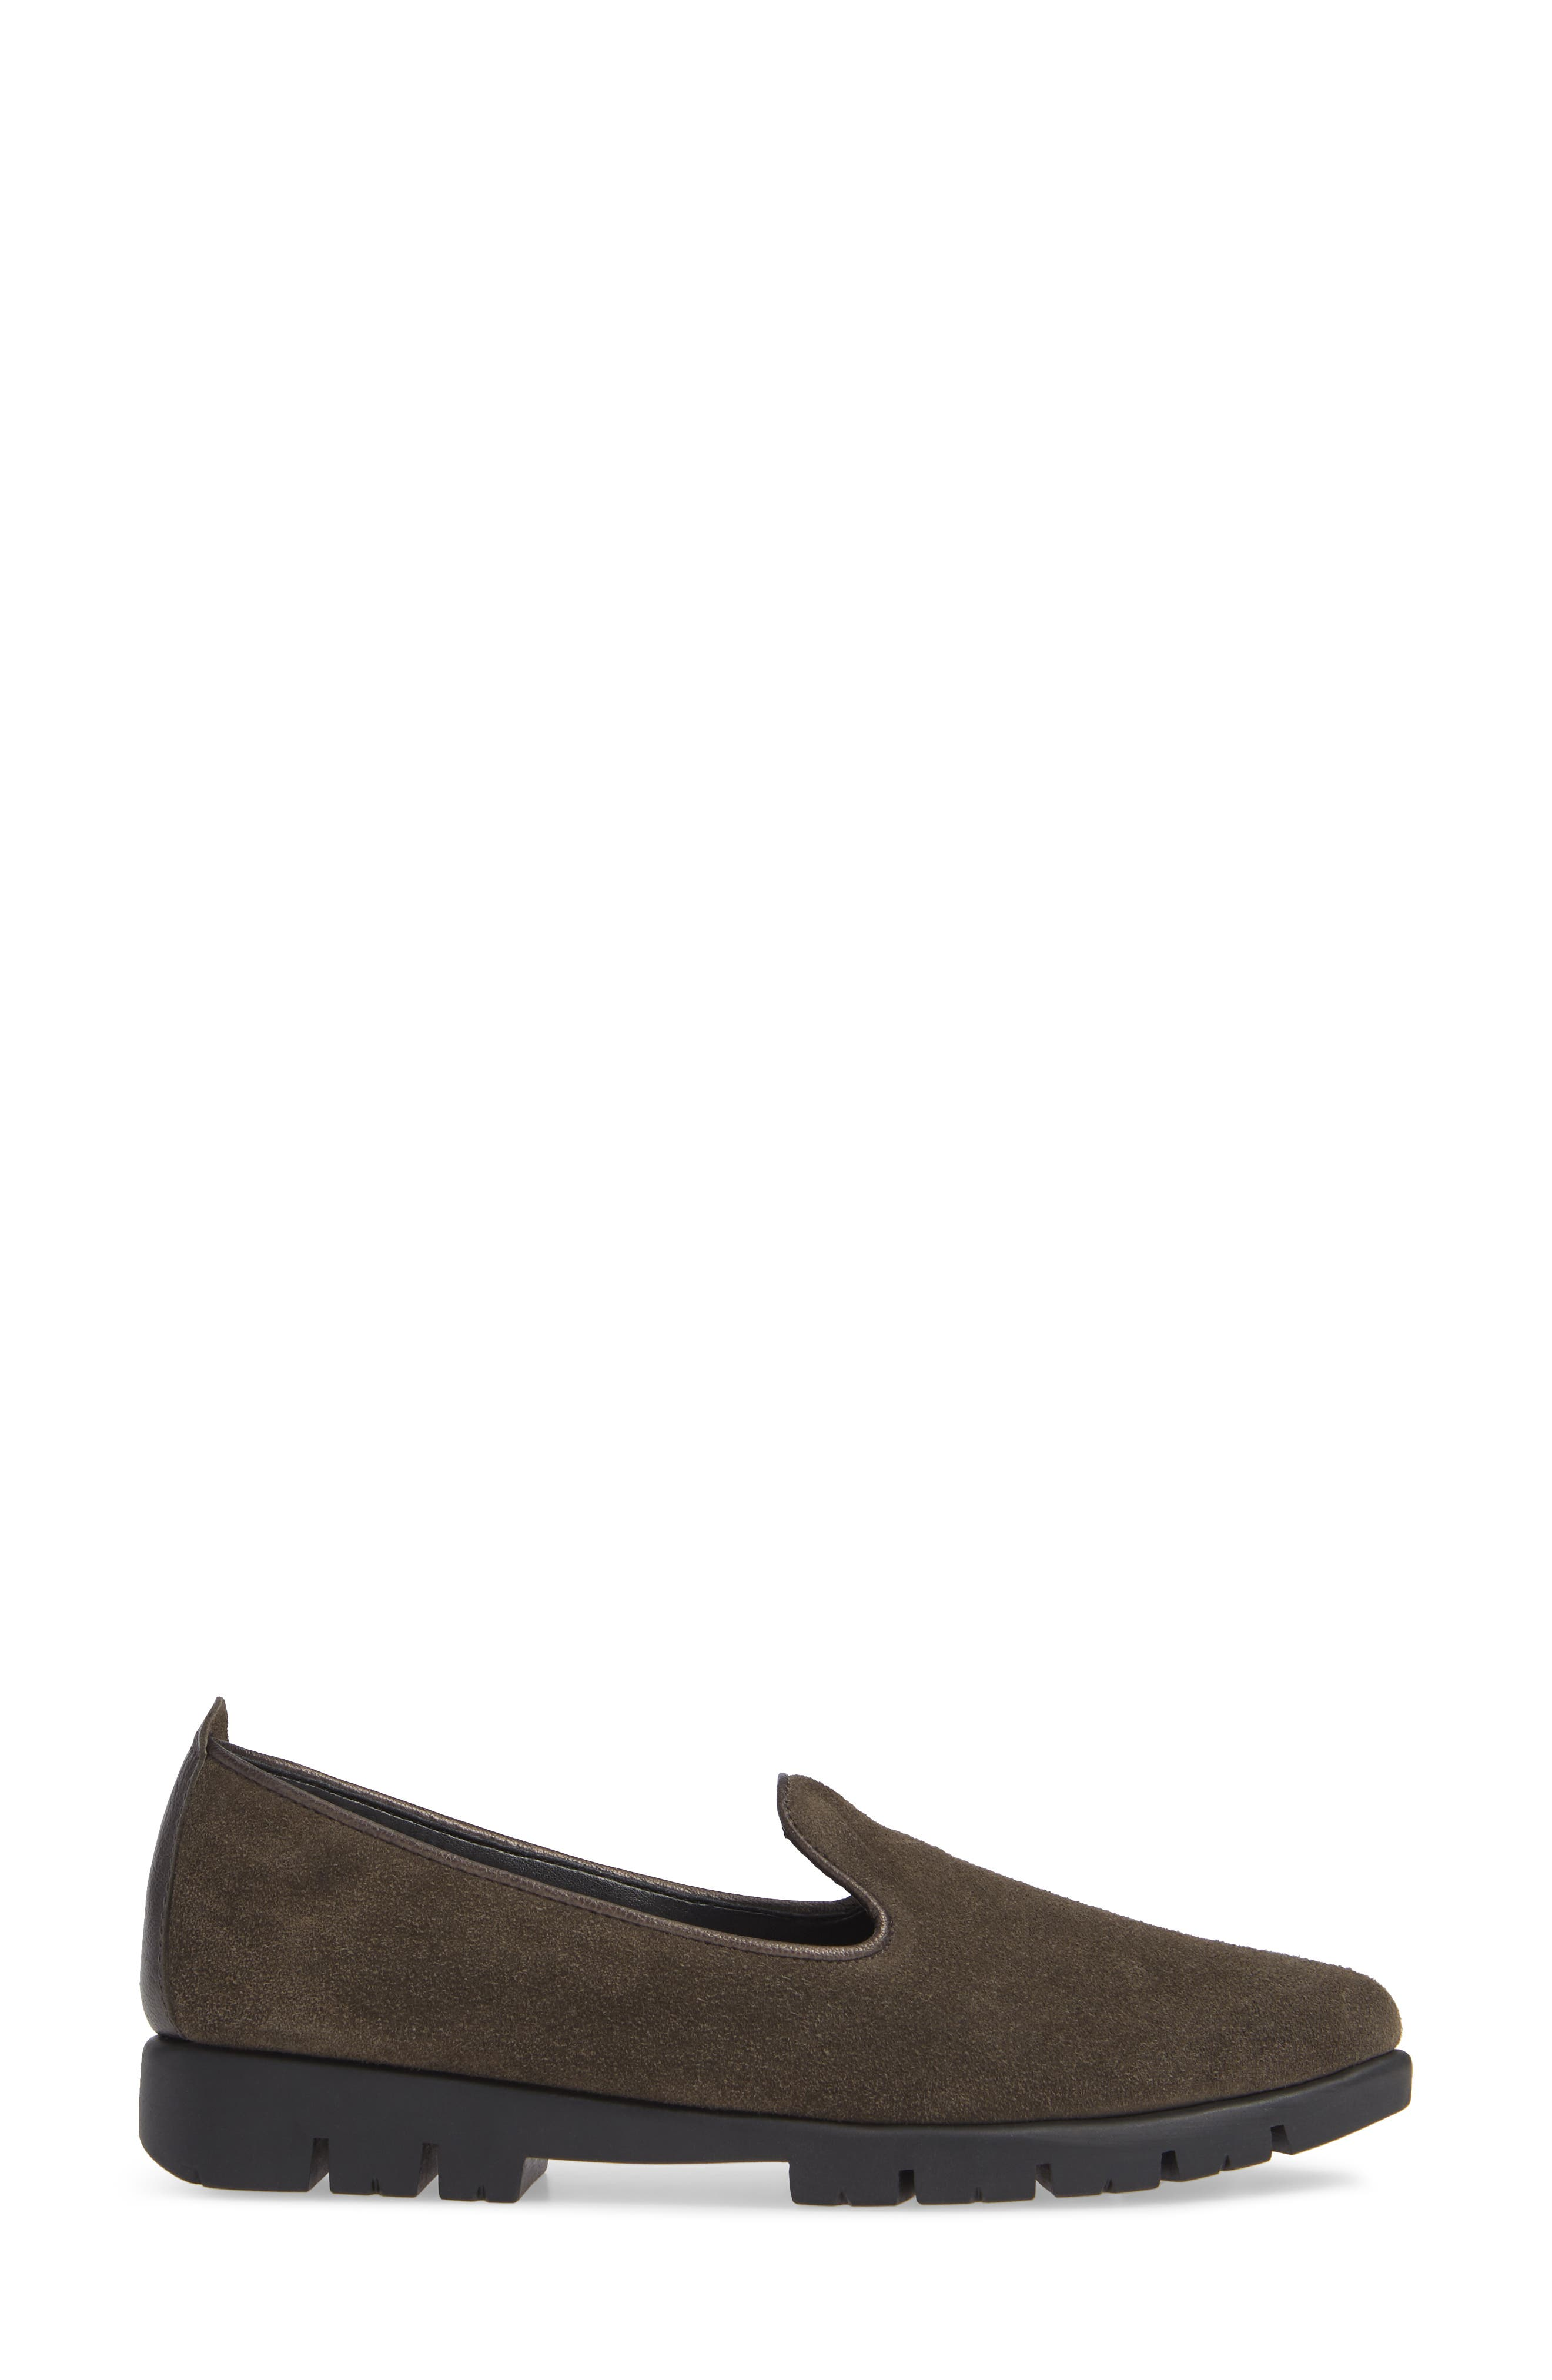 THE FLEXX, Smokin' Hot Plush Loafer, Alternate thumbnail 3, color, BROWN SUEDE